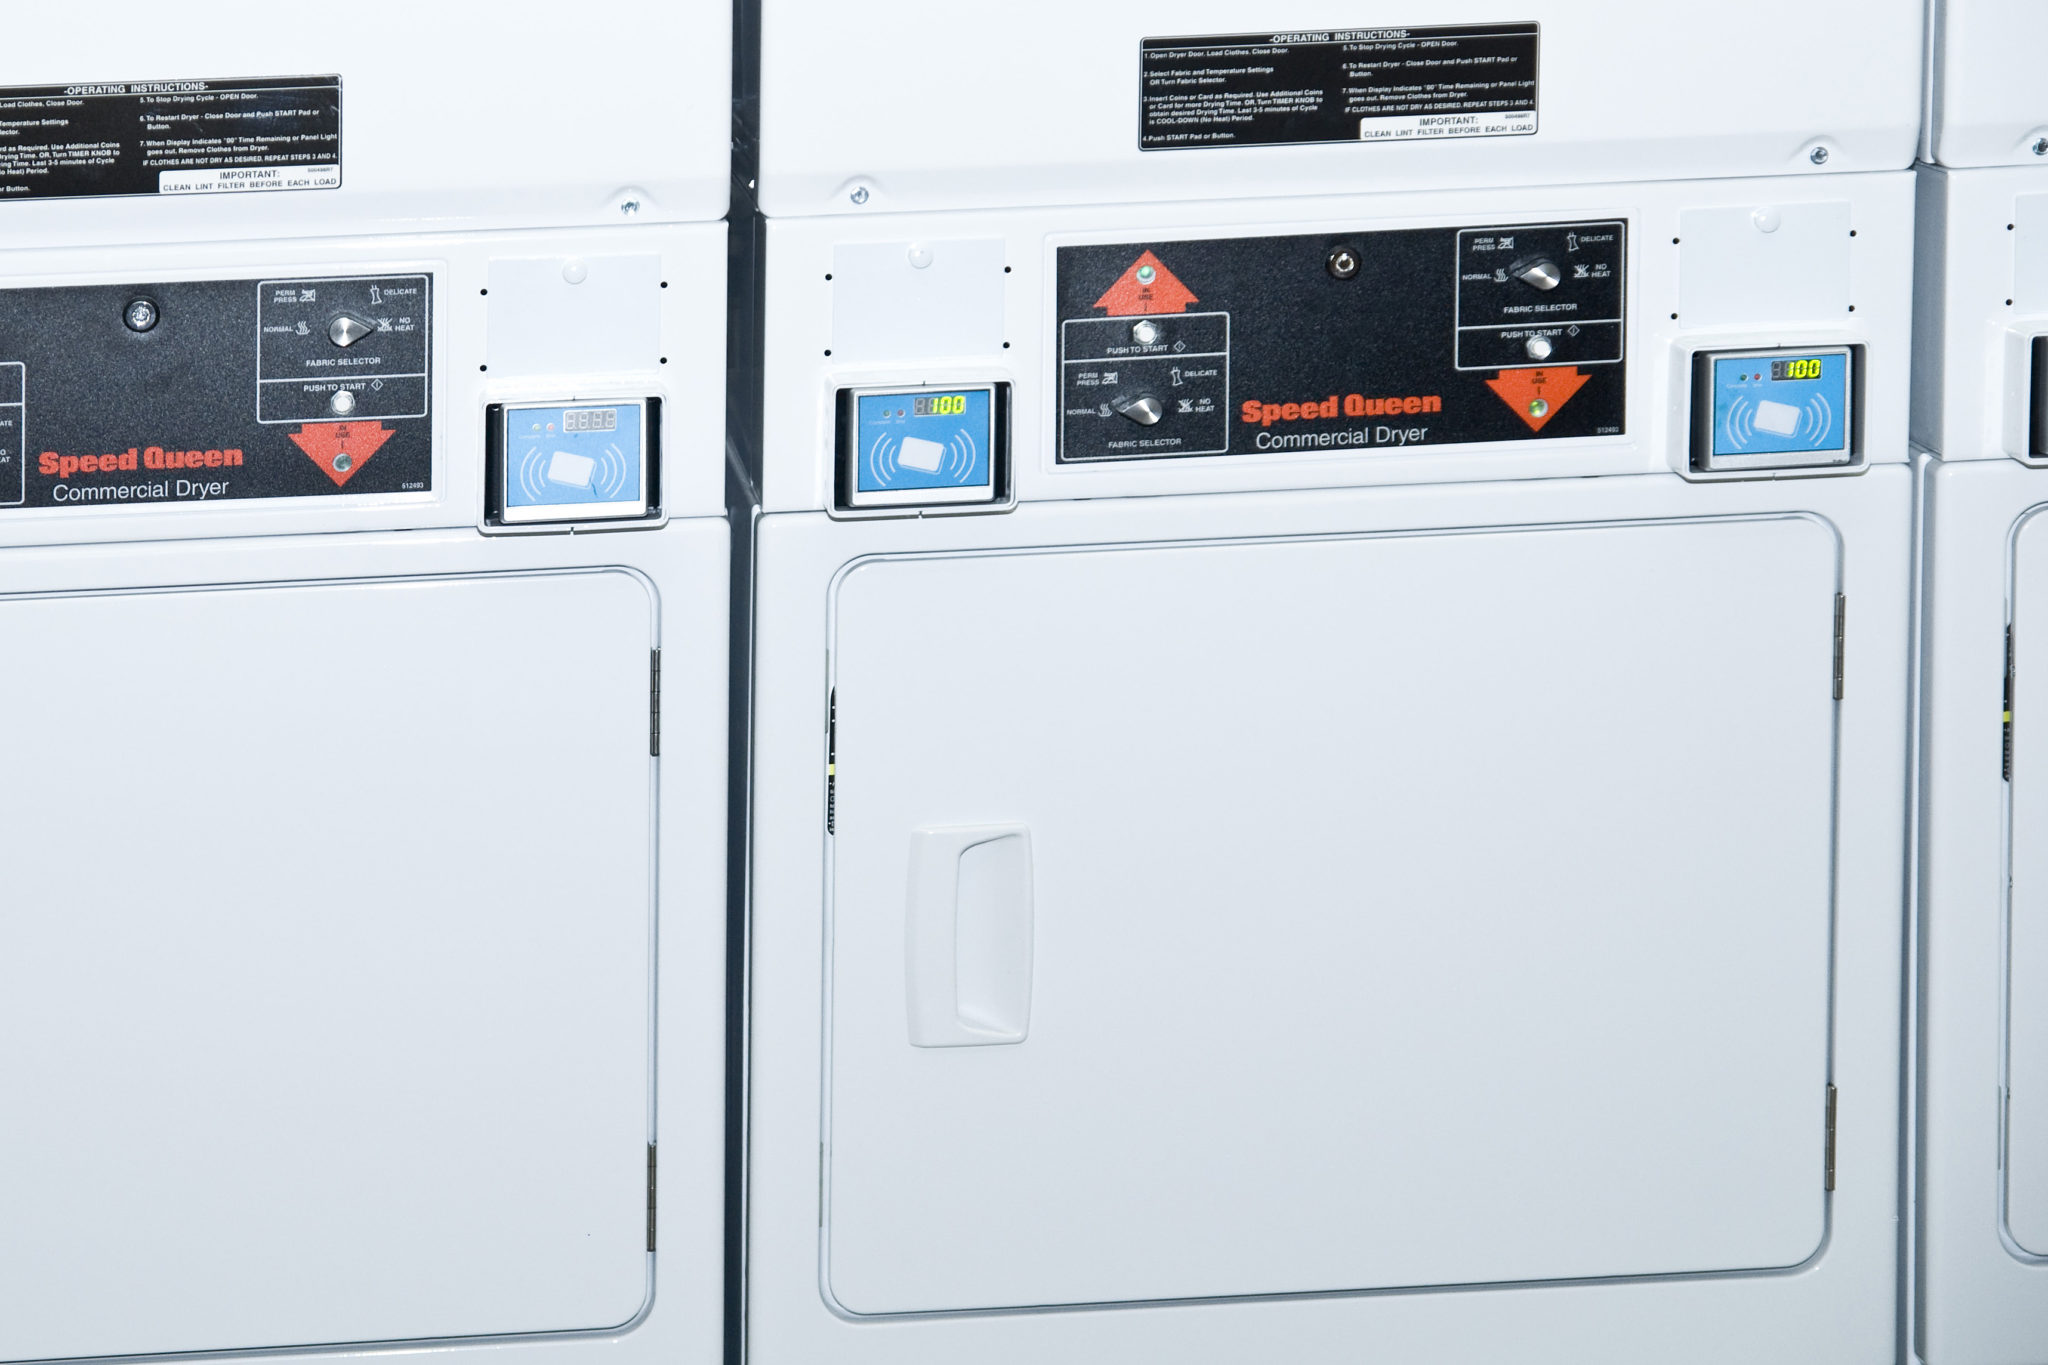 buying or leasing speed queen commercial laundry equipment. Black Bedroom Furniture Sets. Home Design Ideas